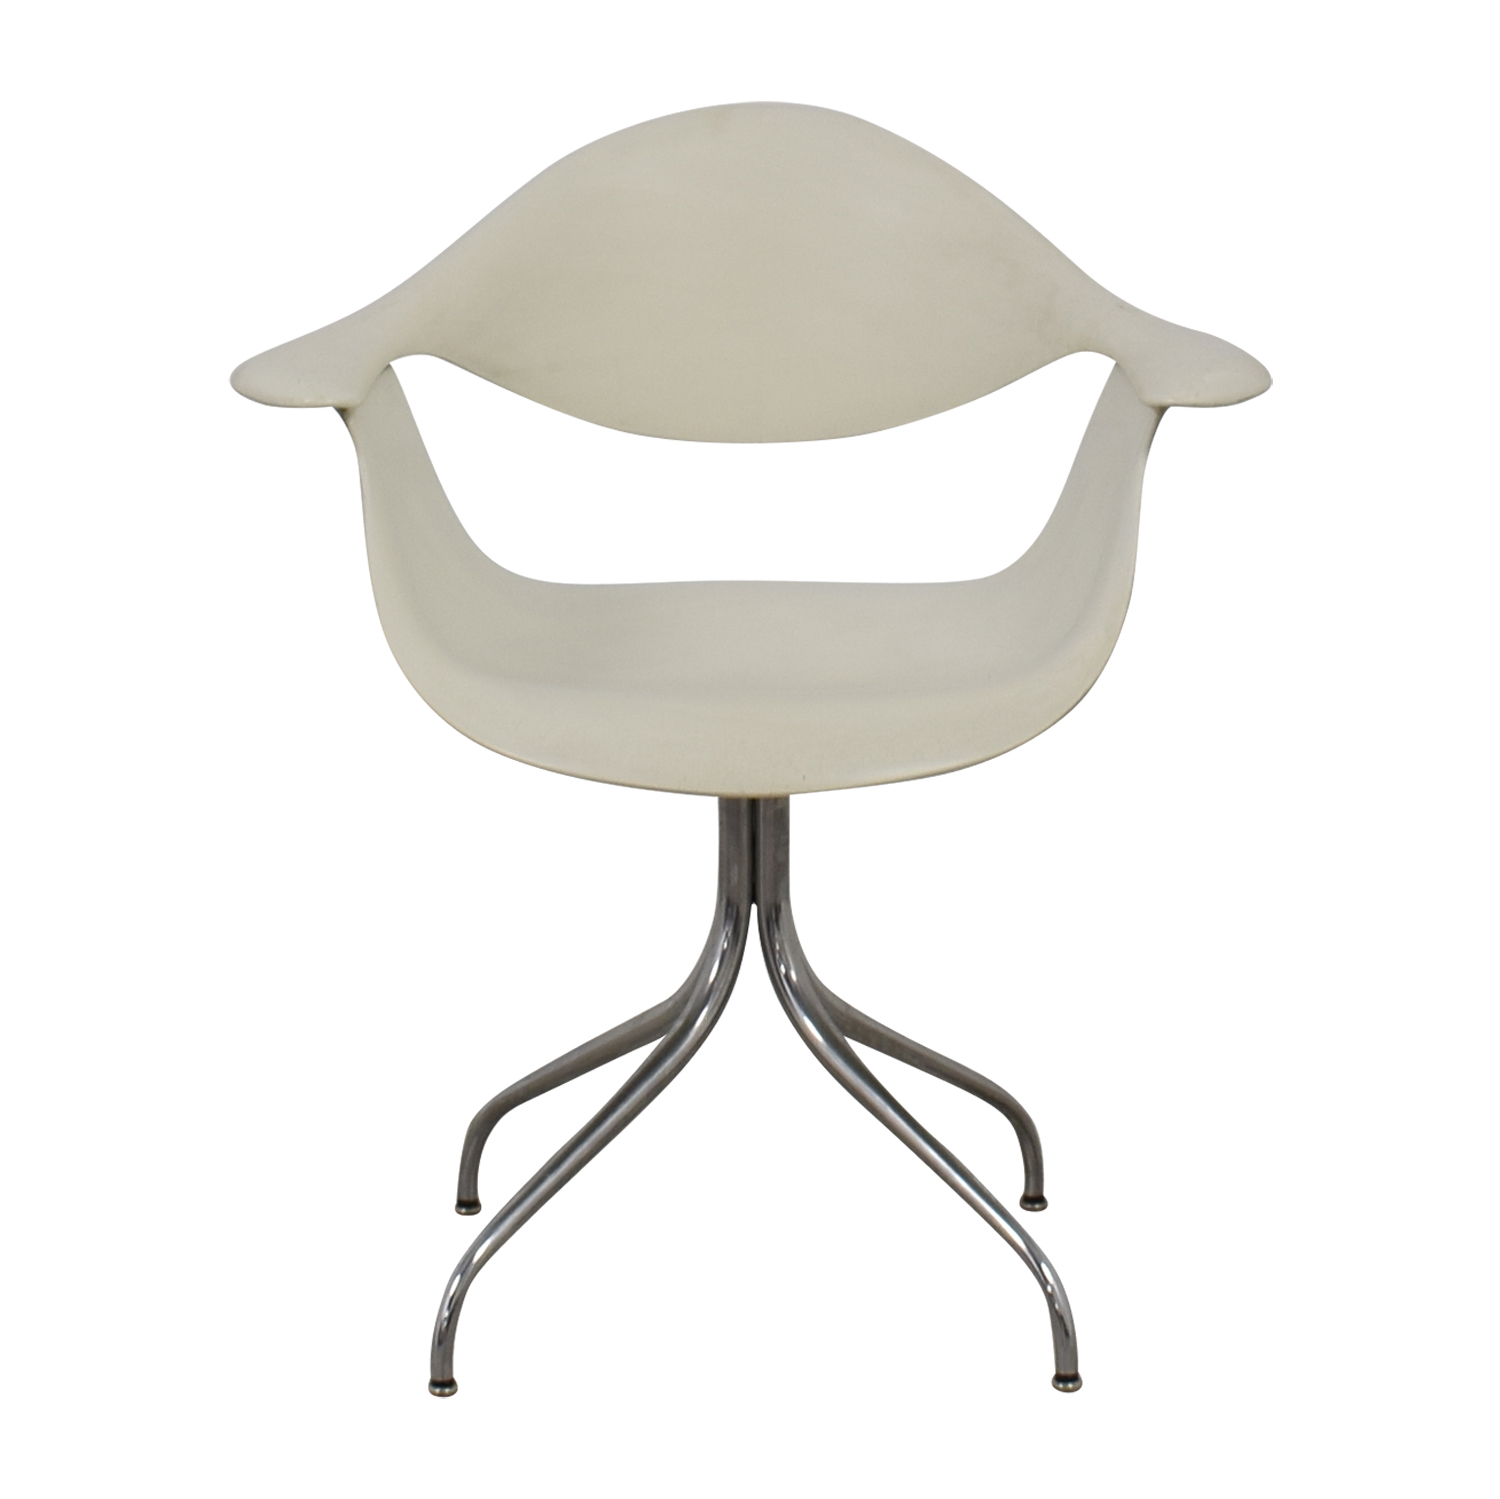 Swell 89 Off Herman Miller Herman Miller Charles Eames White Desk Chair Chairs Ocoug Best Dining Table And Chair Ideas Images Ocougorg